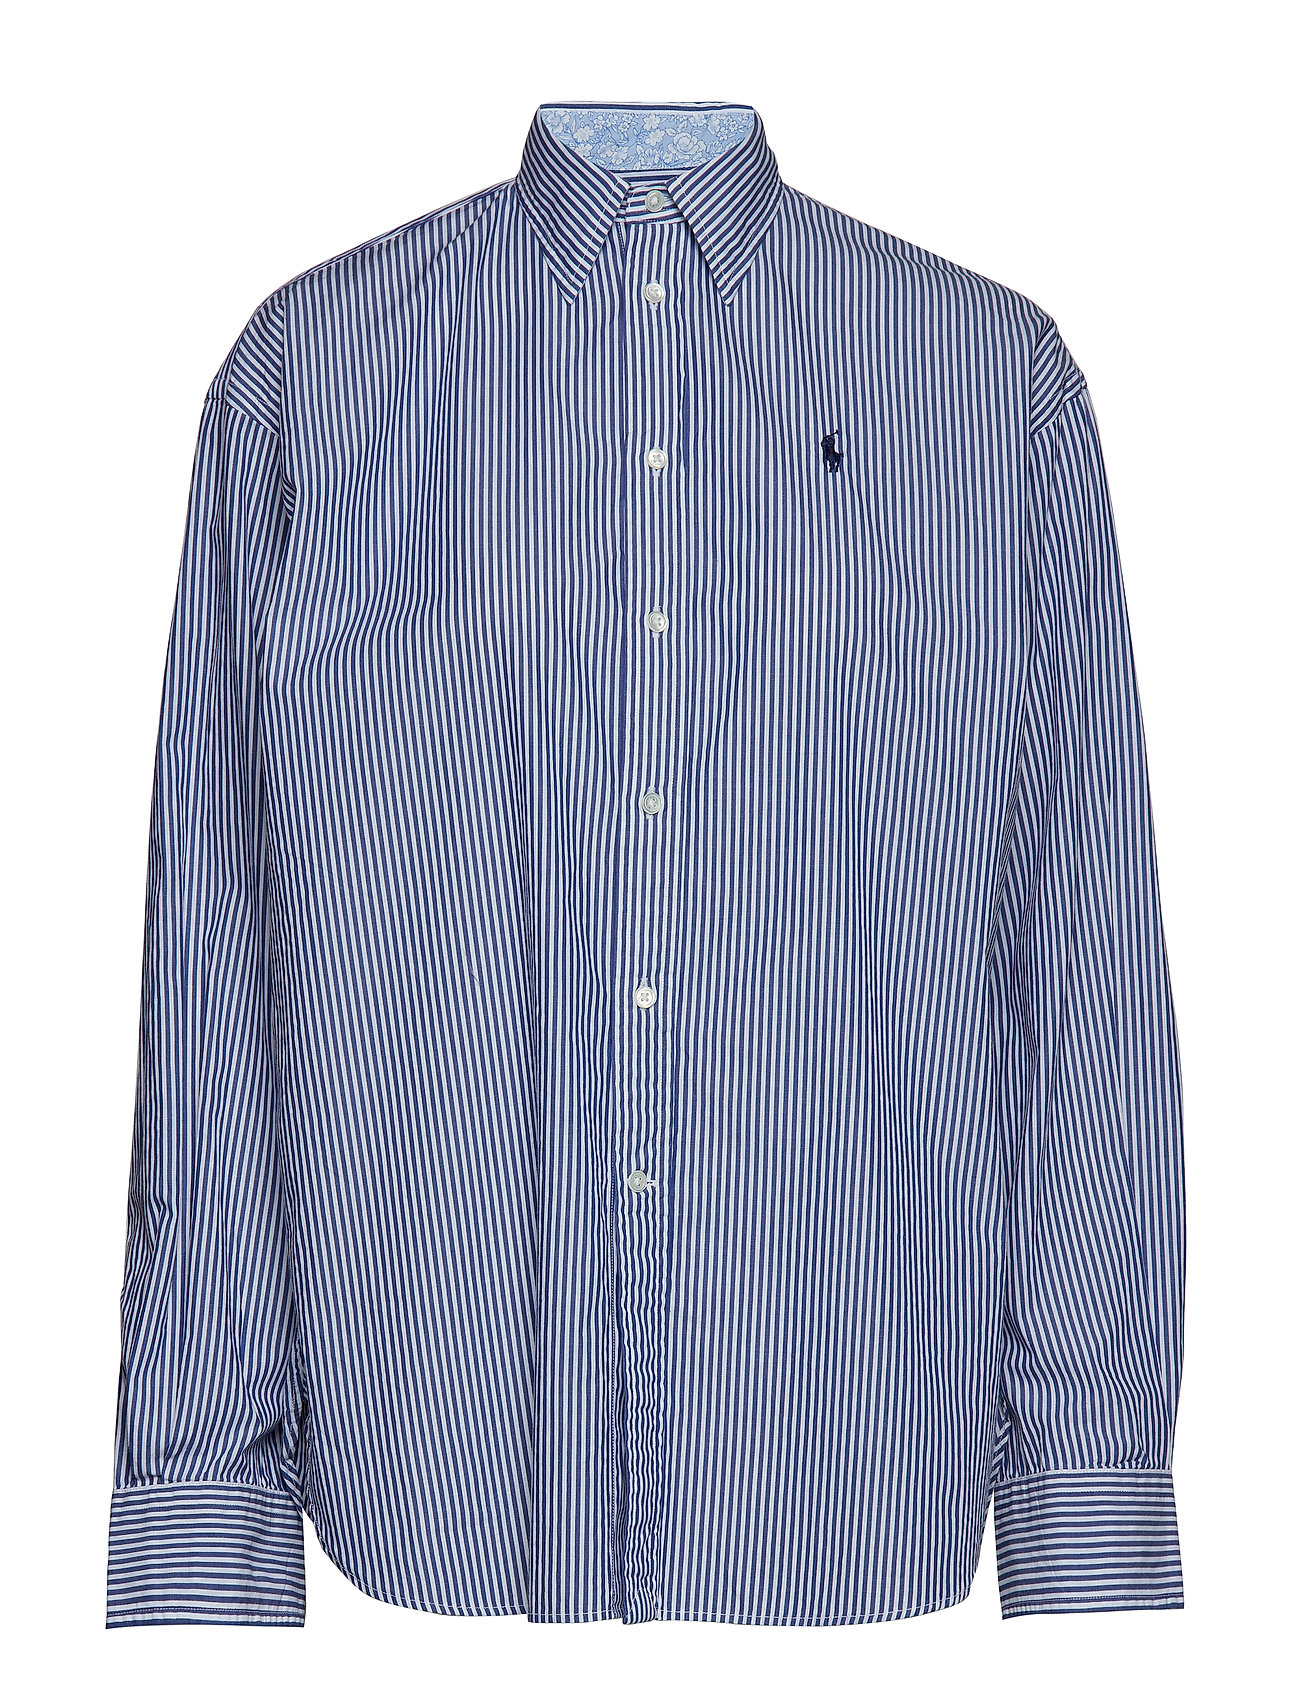 Polo Ralph Lauren Boyfriend Fit Striped Shirt